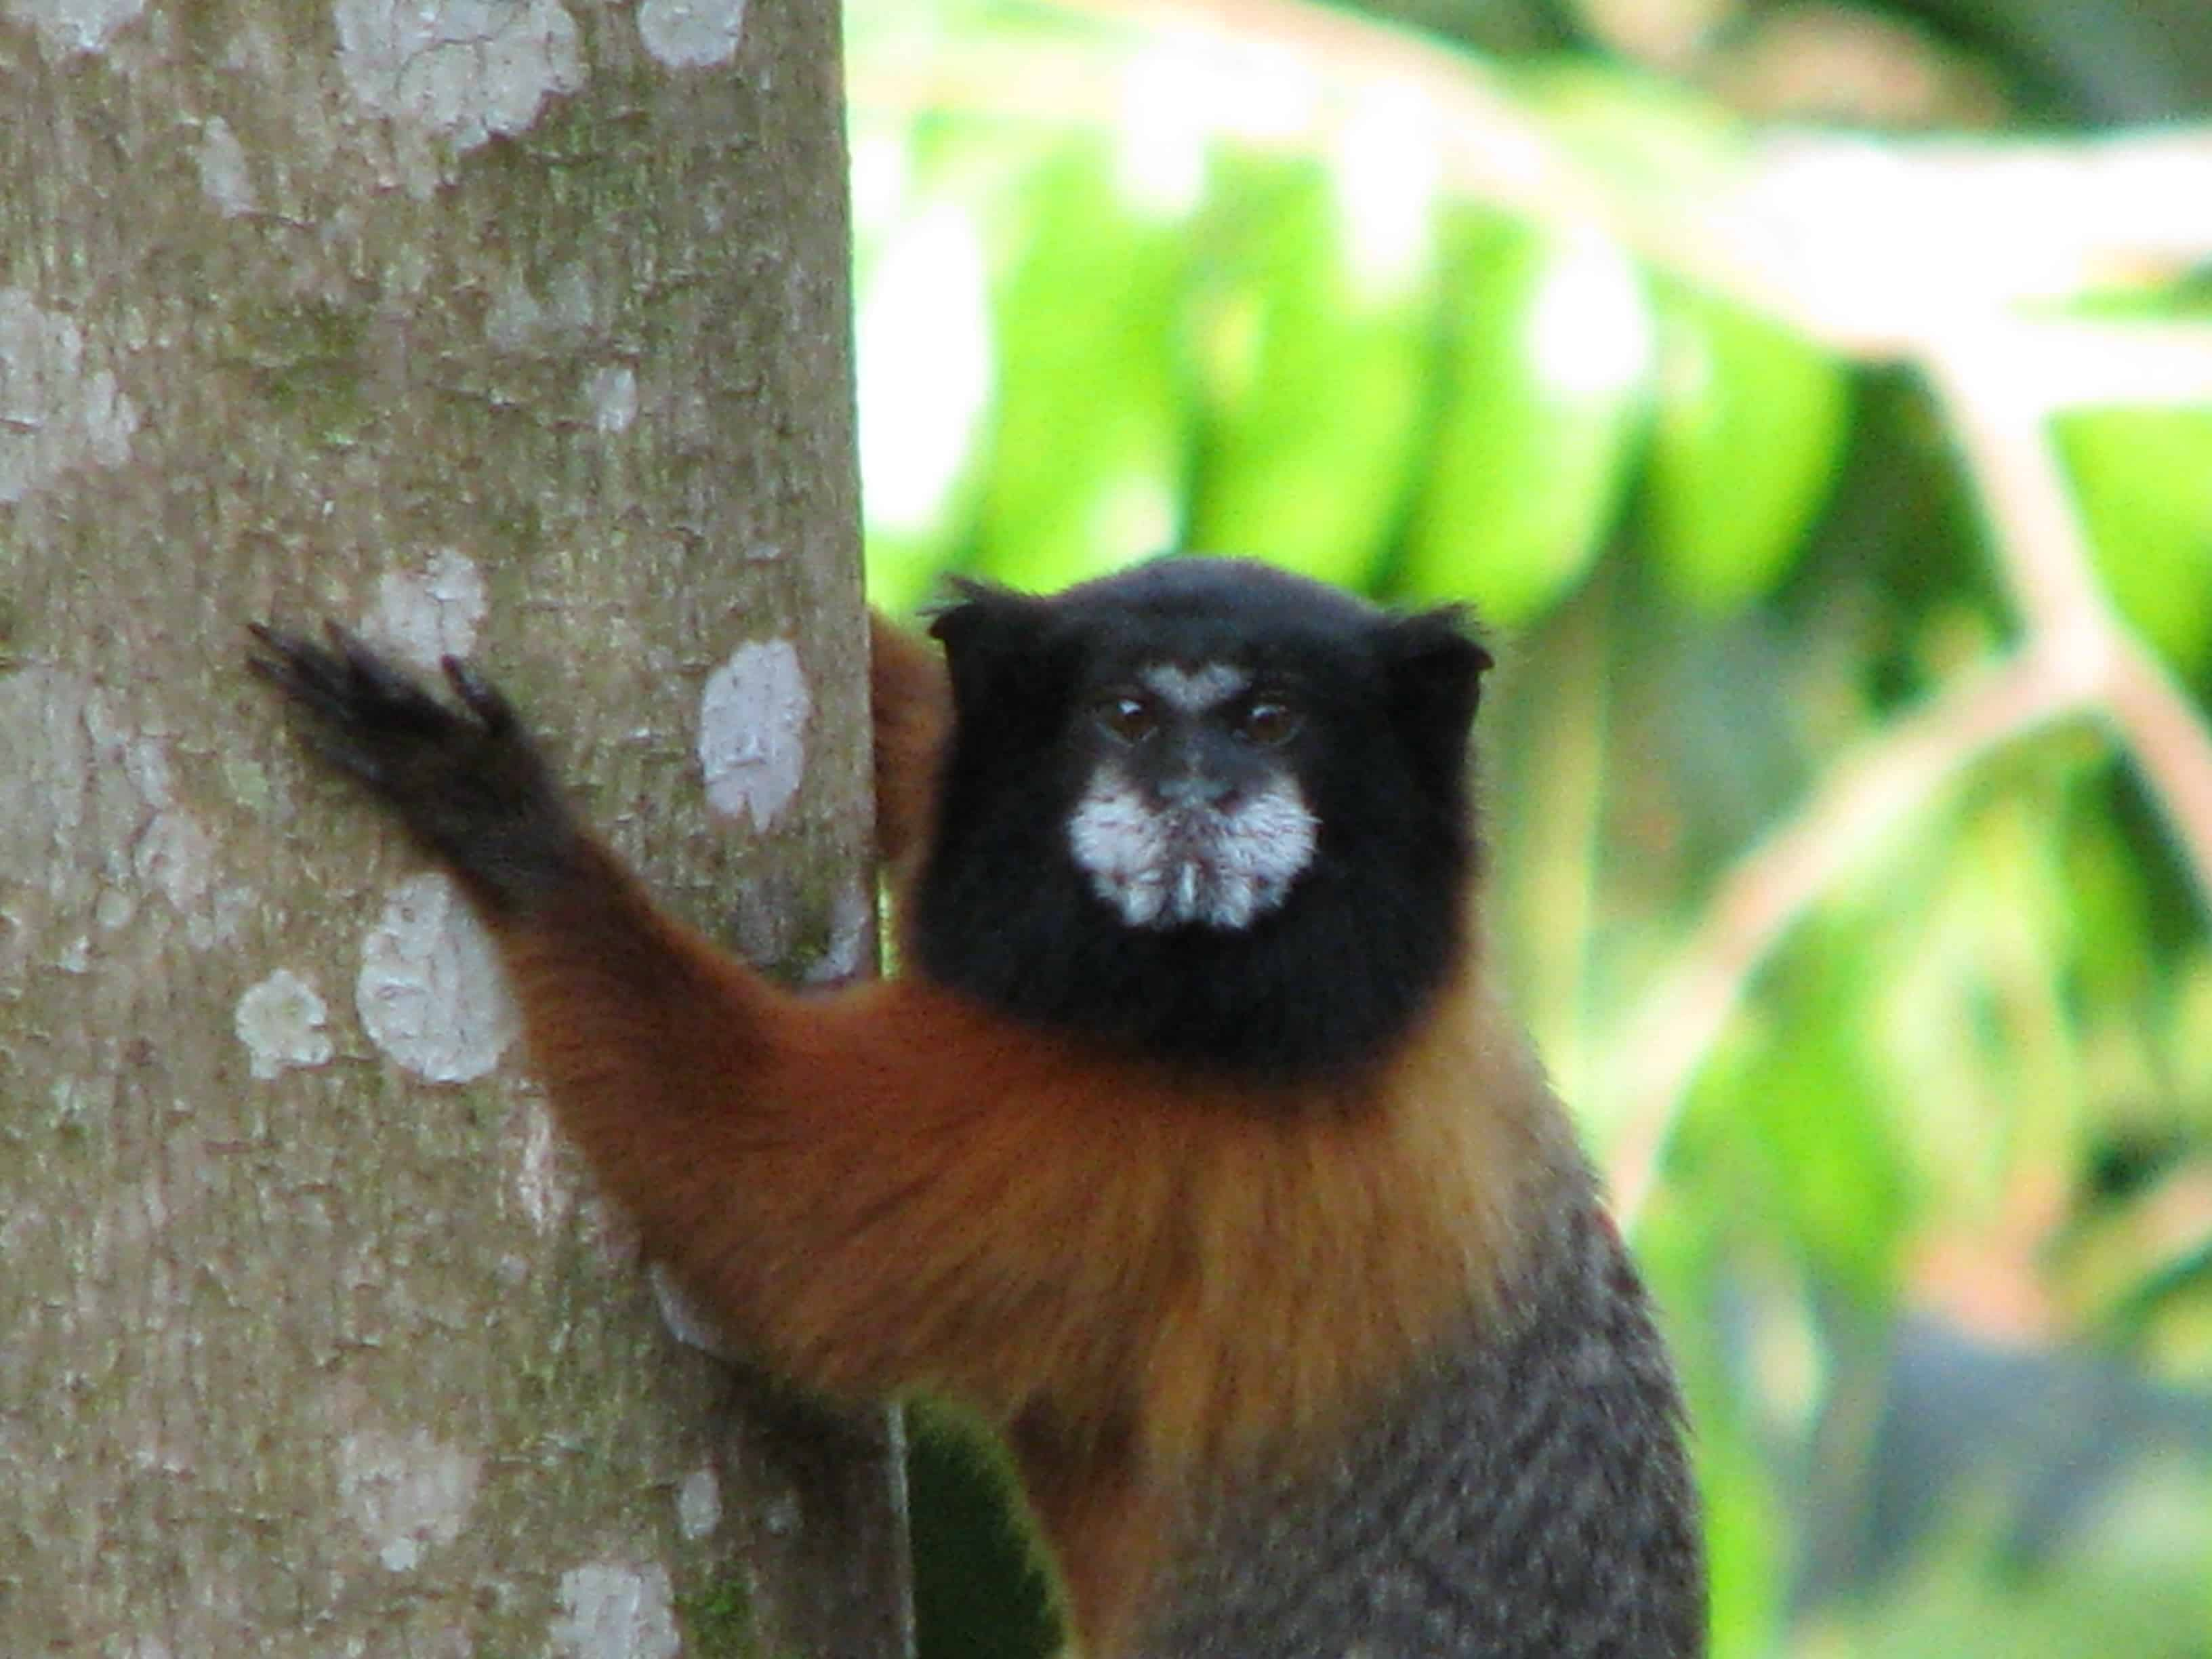 Monkey in tree on Ecuador Amazon Adventure at Napo Wildlife Center.